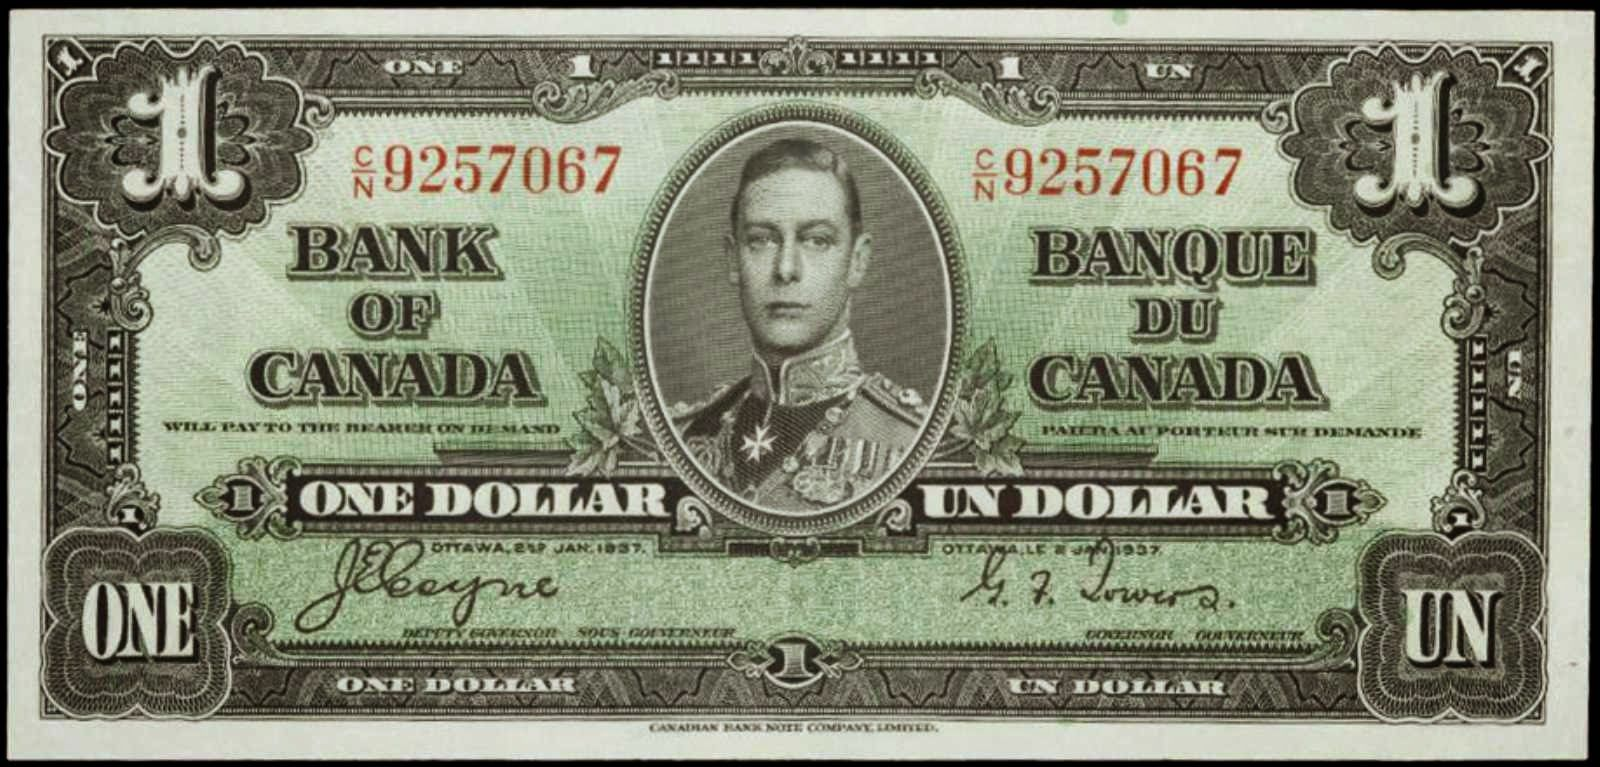 Bank Of Canada 1937 One Dollar Bill Canadian Banknotes